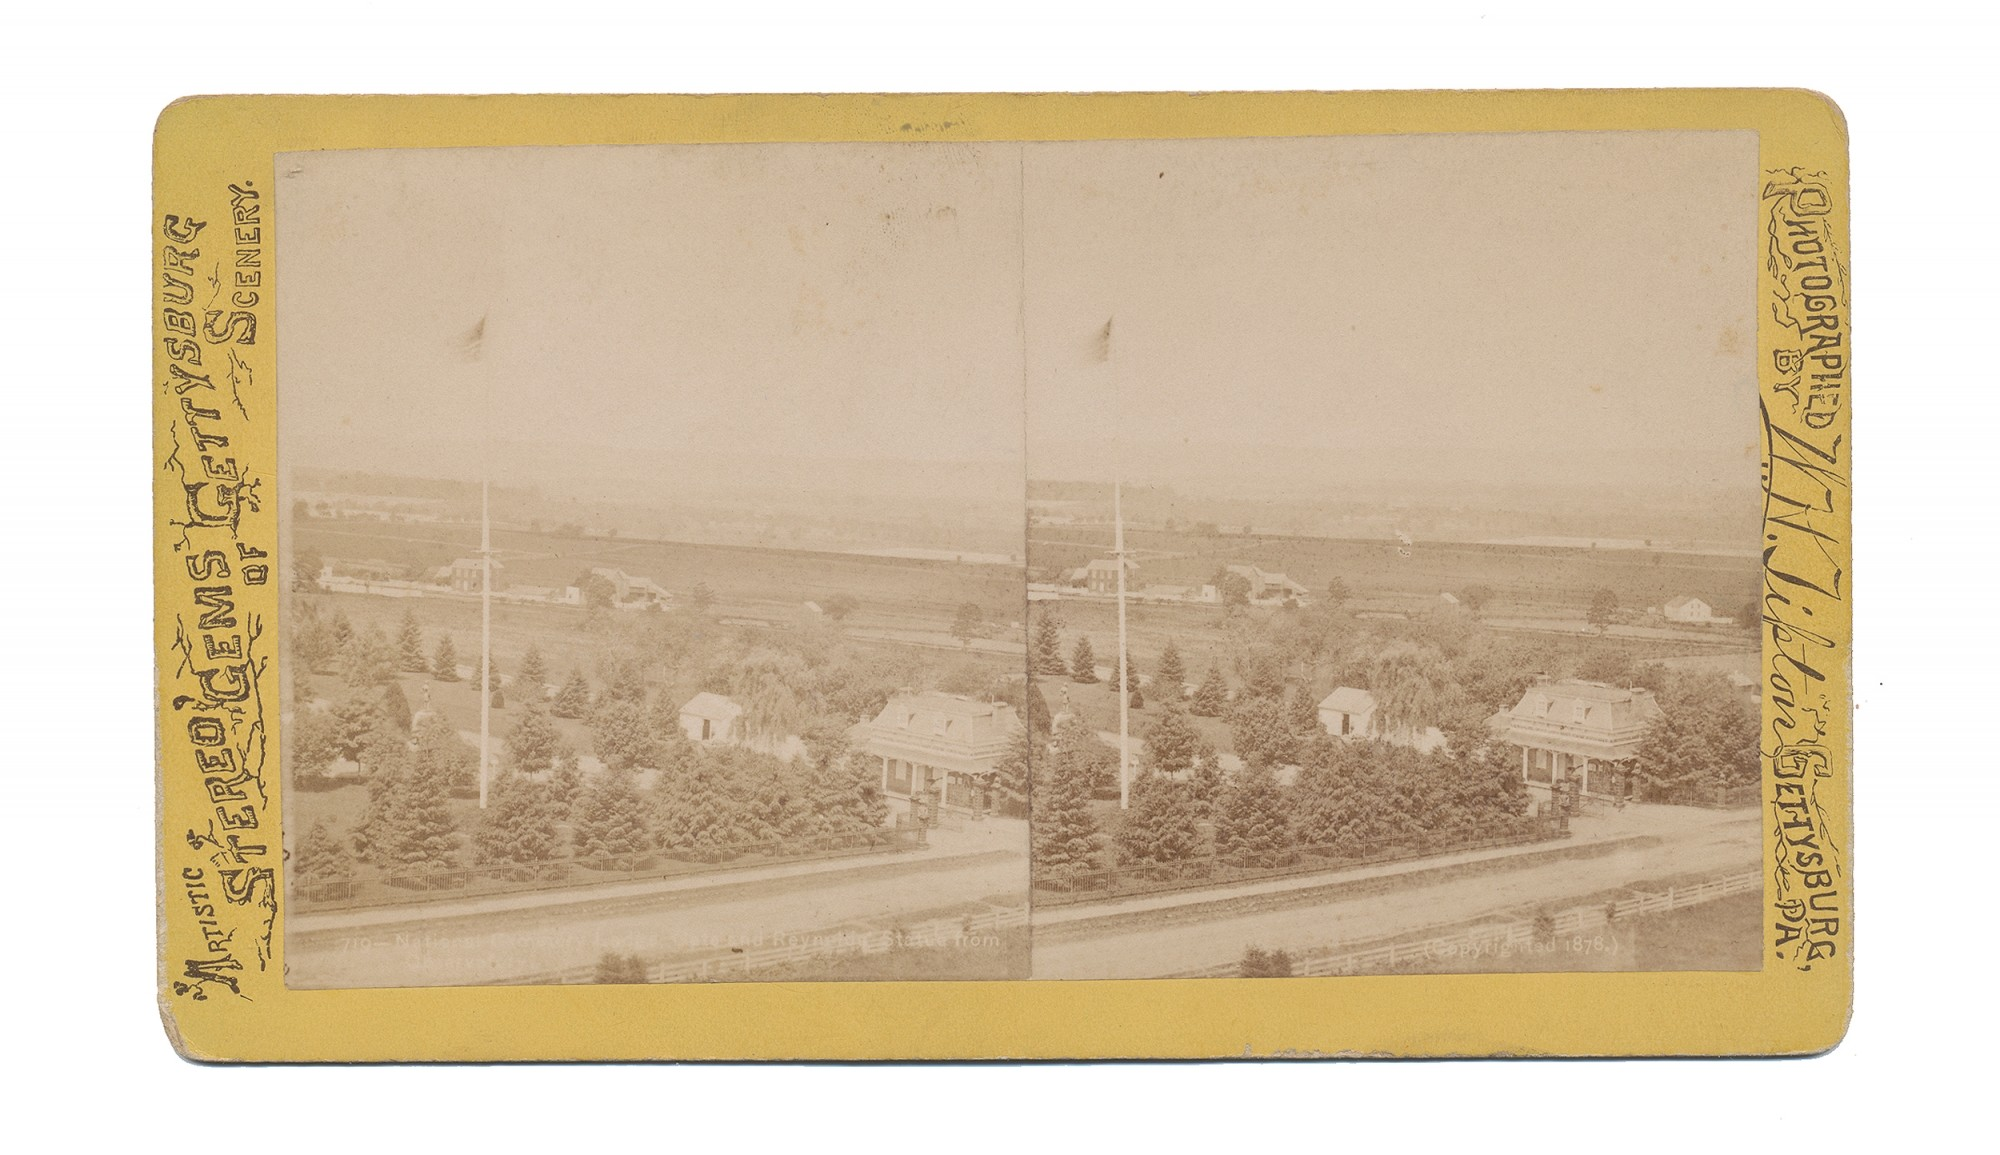 TIPTON STEREO VIEW OF SOLDIER'S NATIONAL CEMETERY GATE, GETTYSBURG